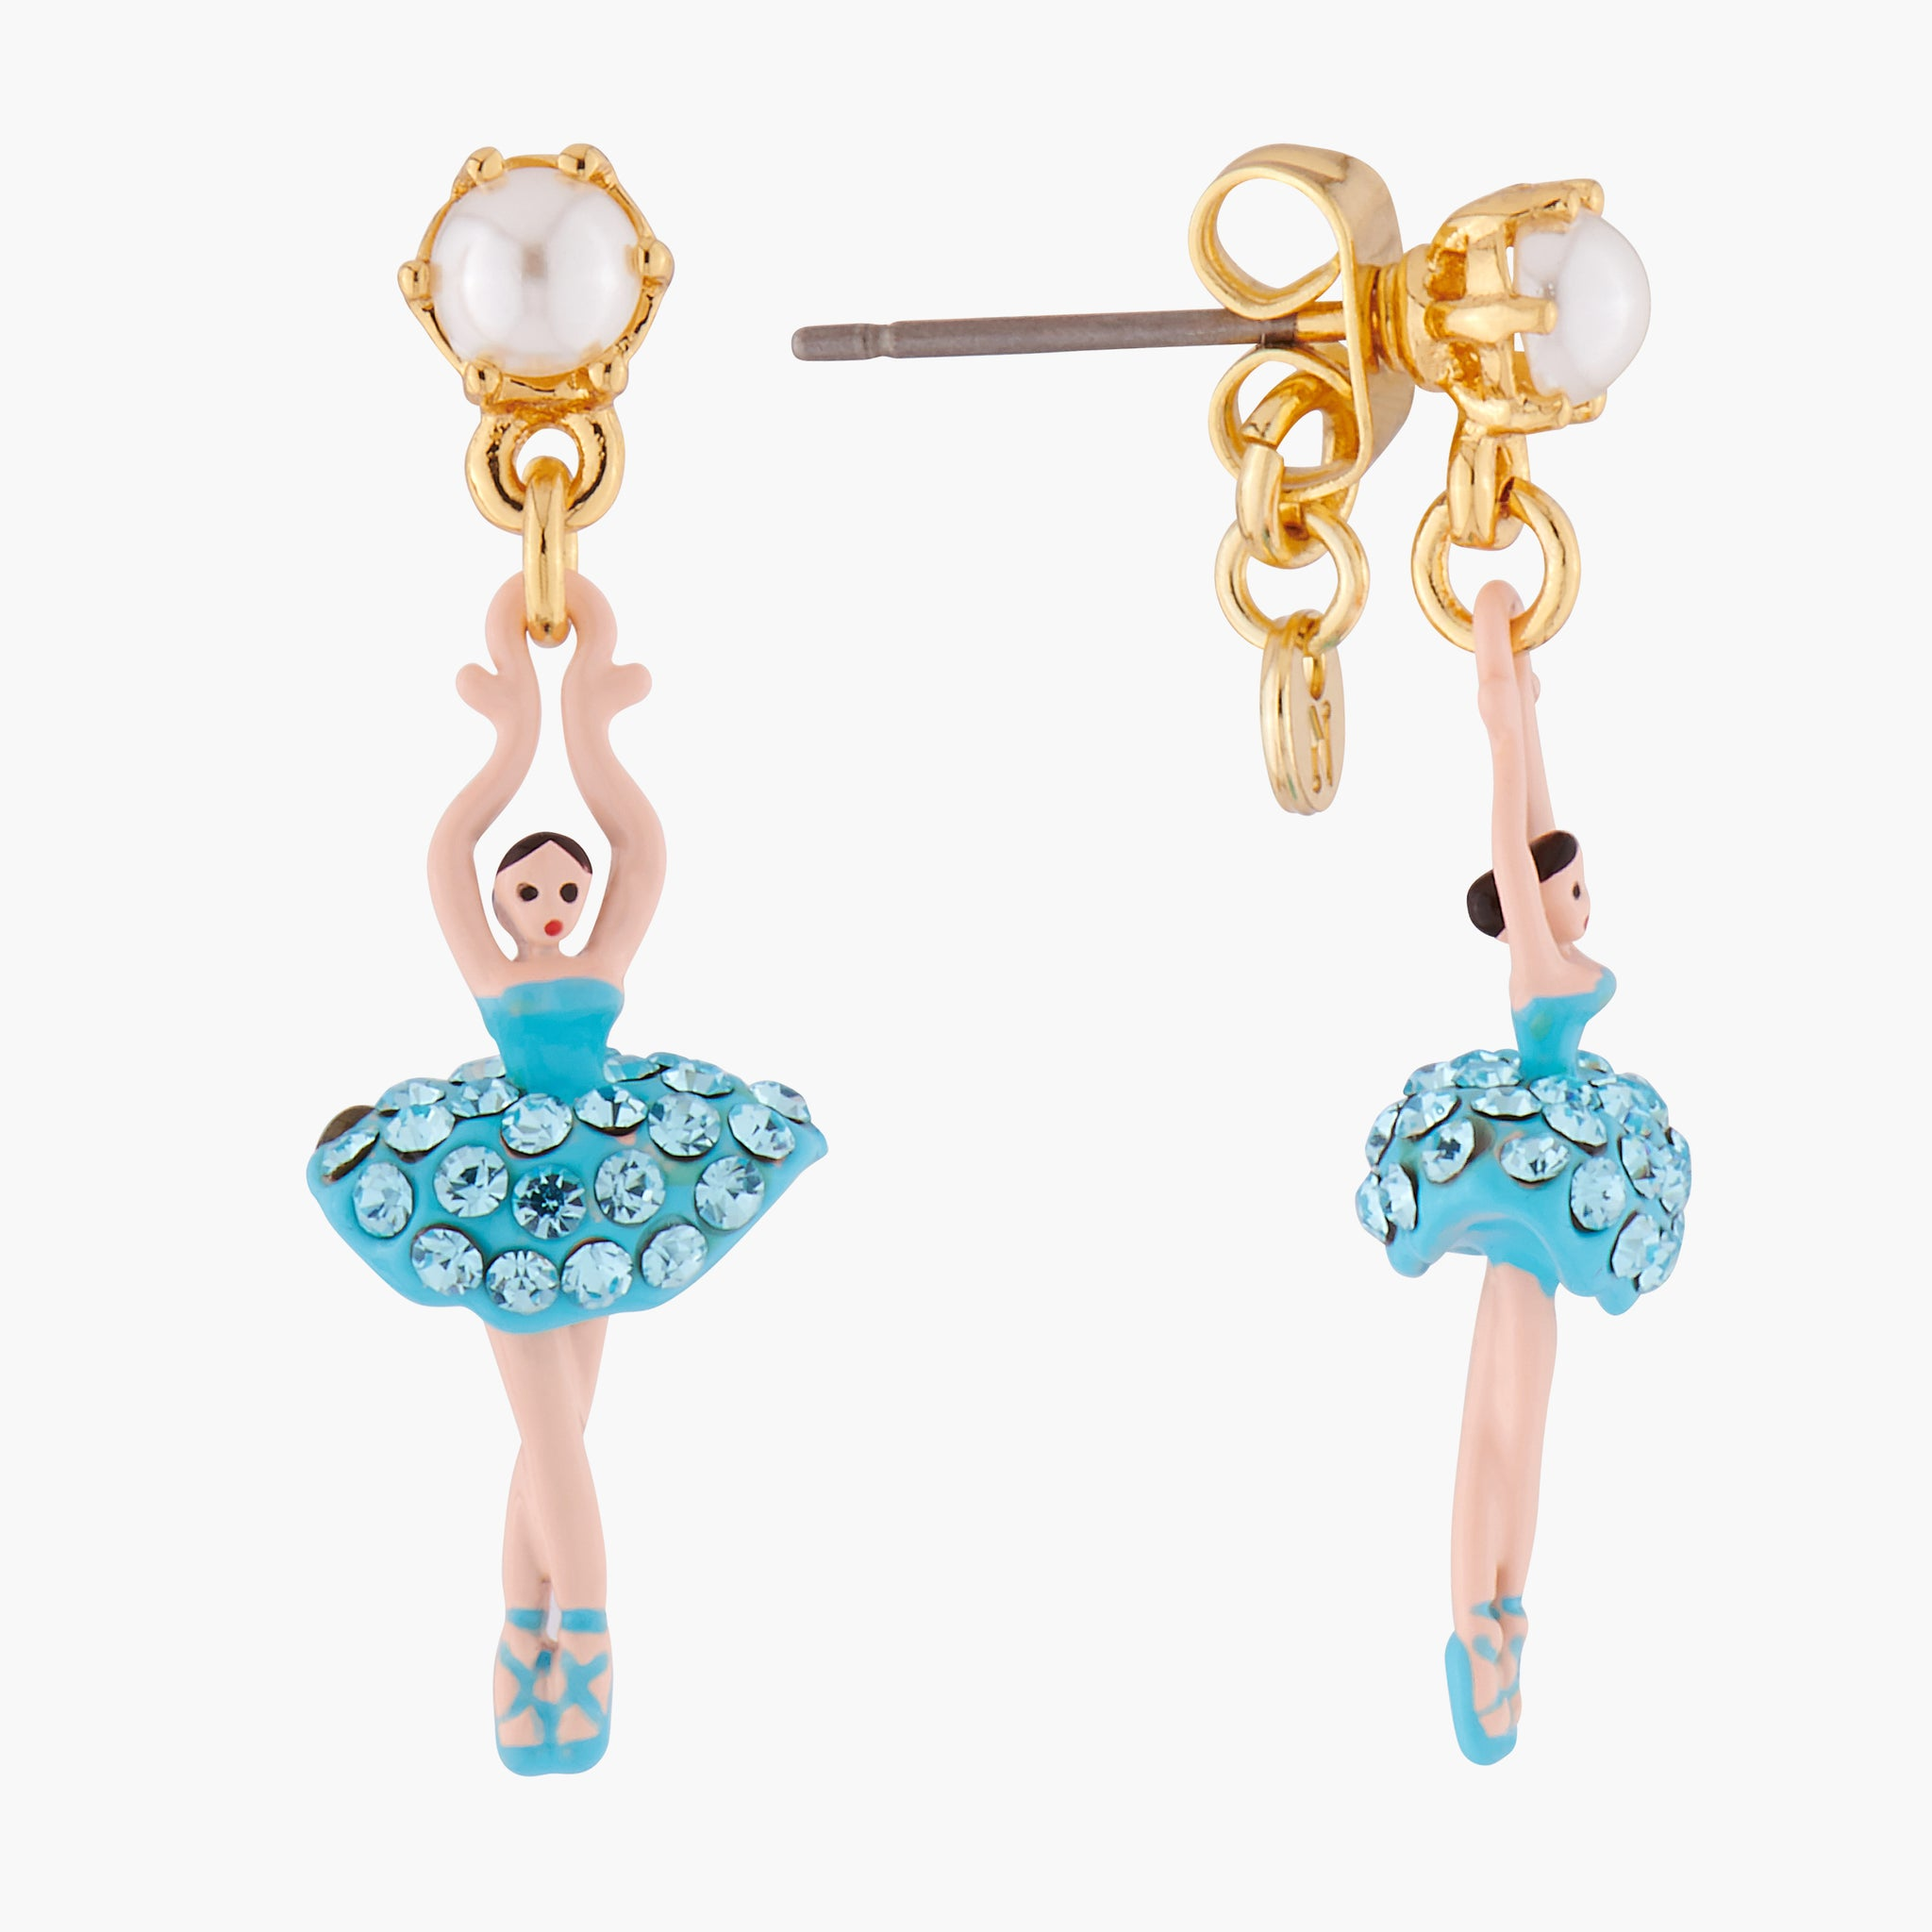 Aquamarine Crystals Stud Mini-Ballerina Earrings